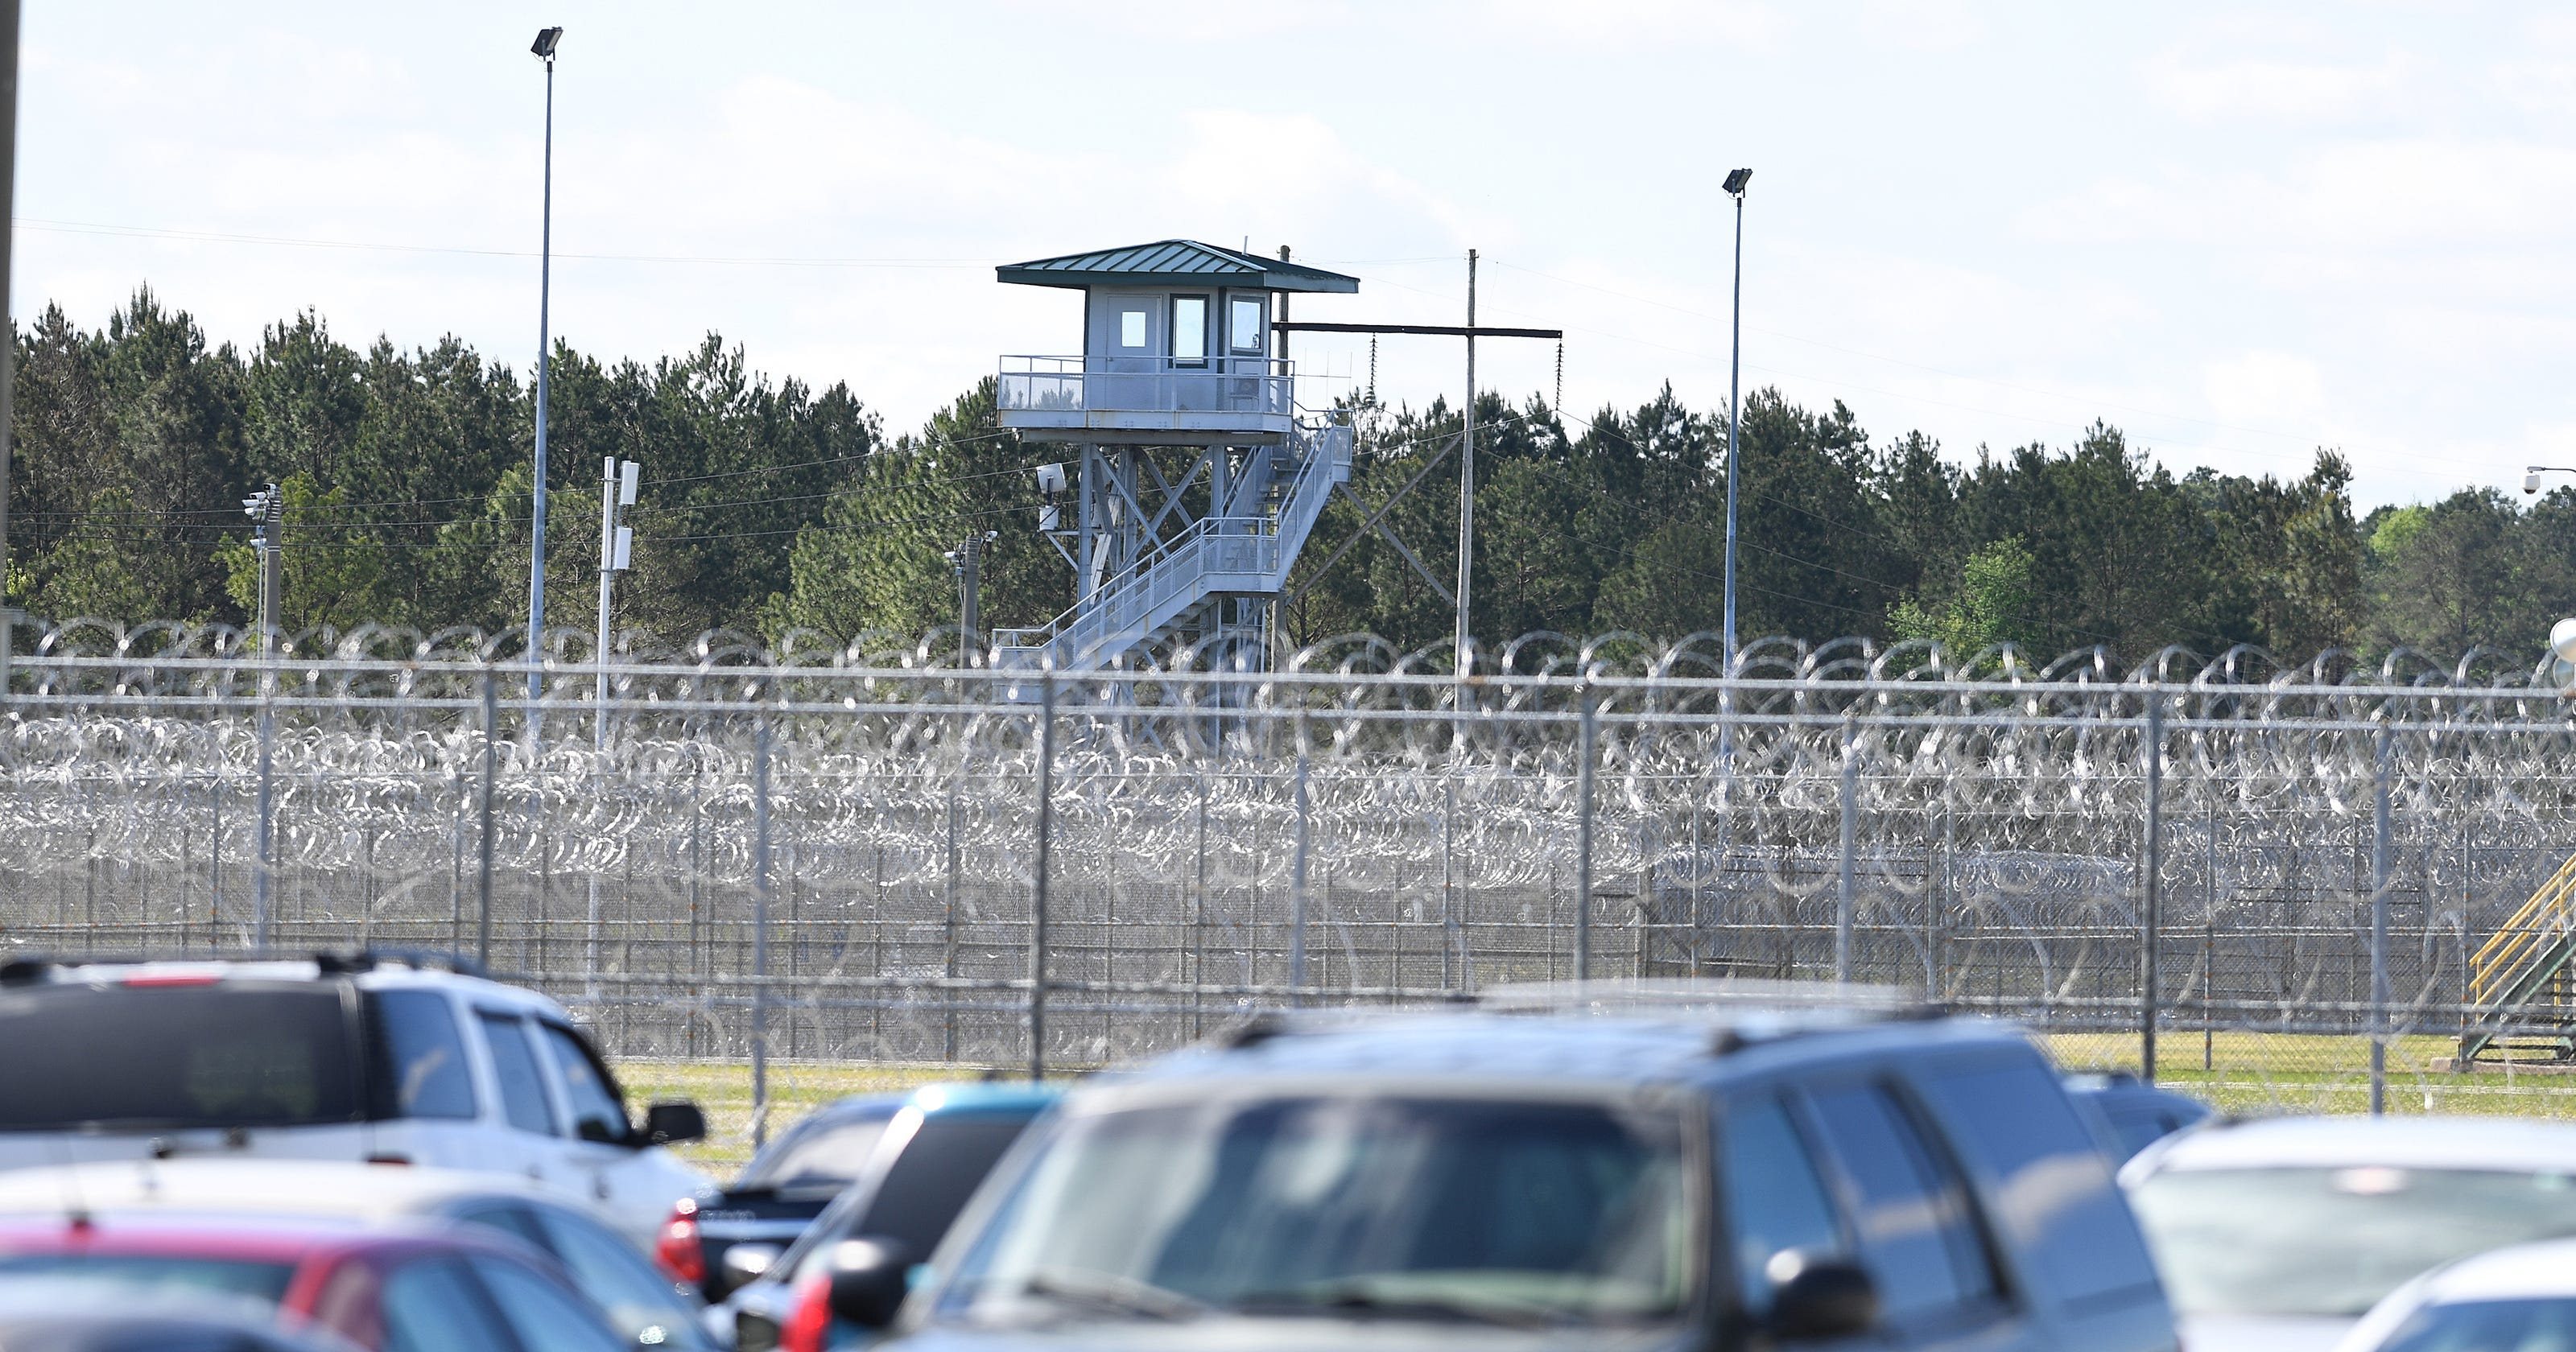 Identities of 7 killed at Lee County prison in South Carolina